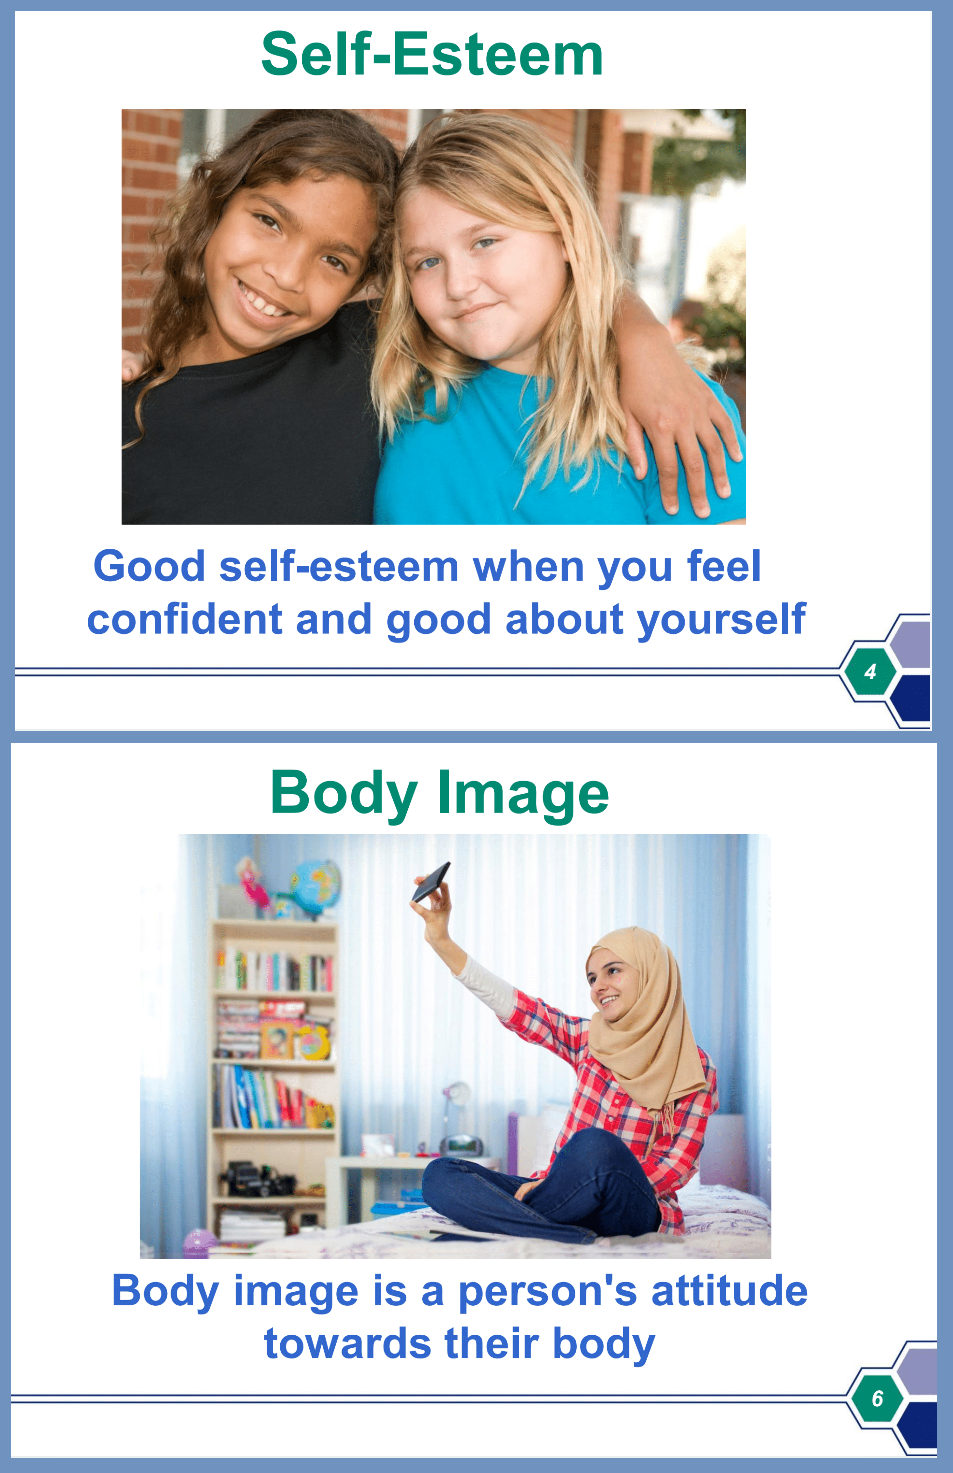 Self-esteem, body image photo